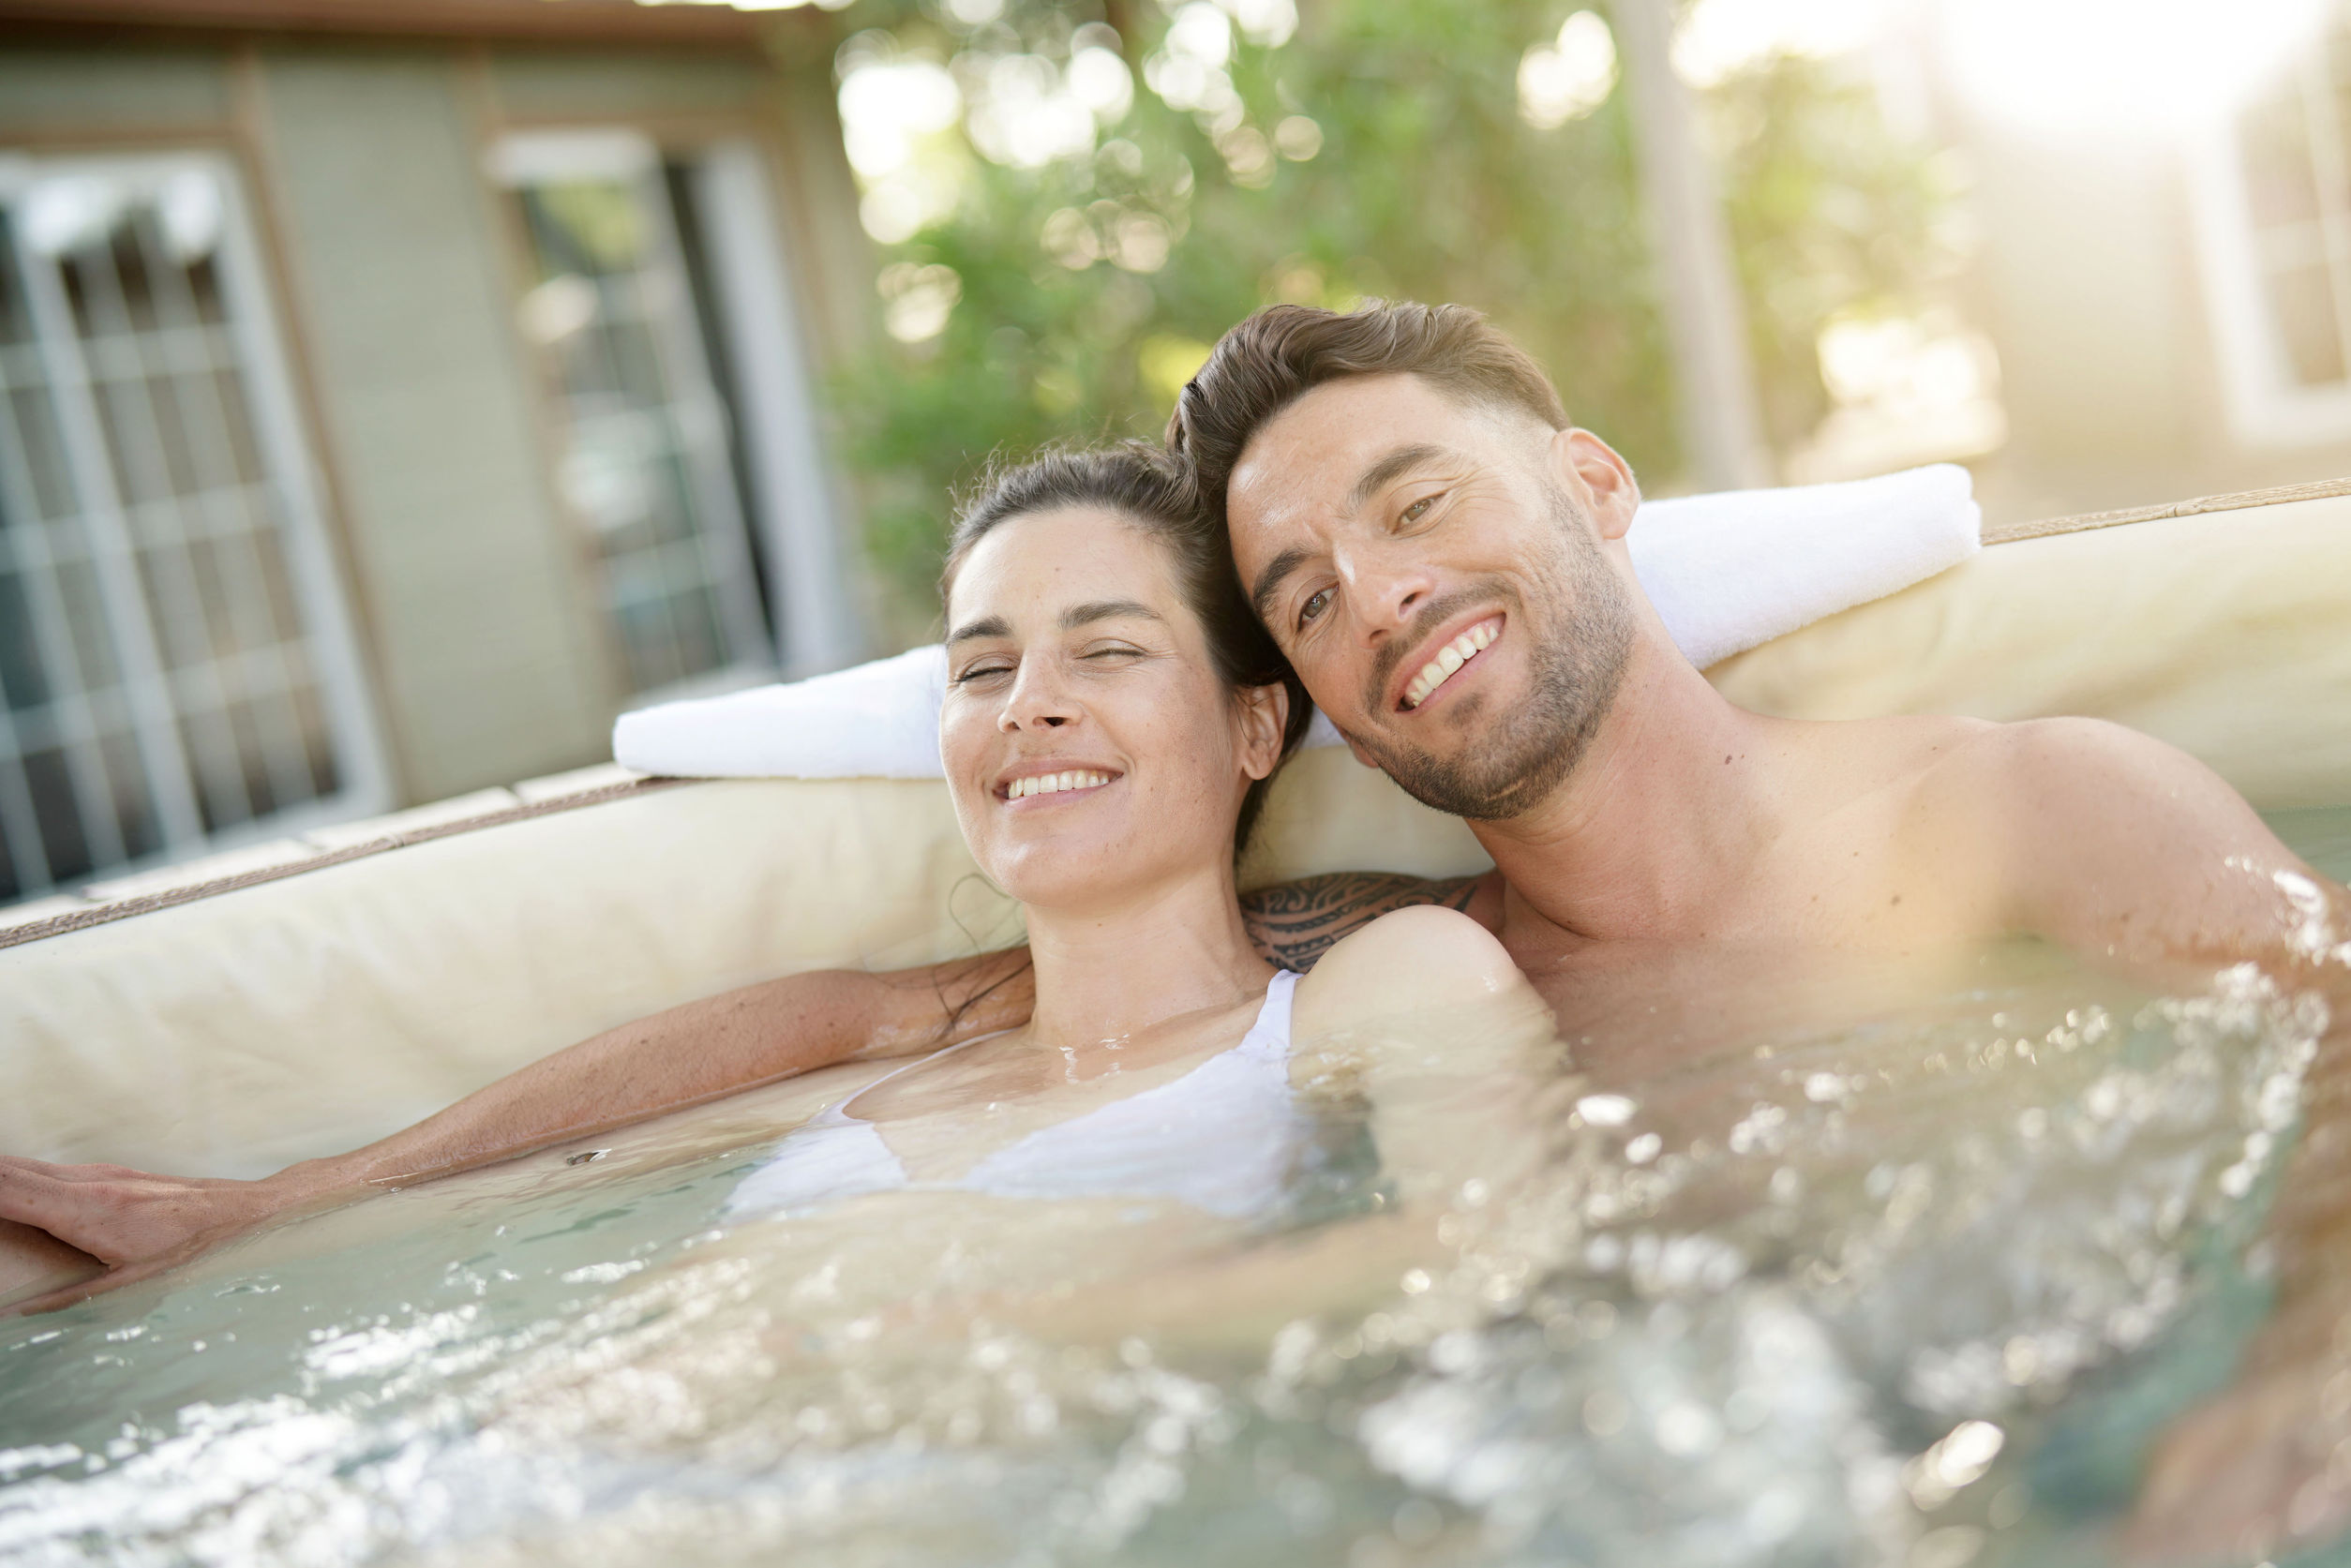 Best 2 Person Hot Tub Reviewed and Rated in 2019